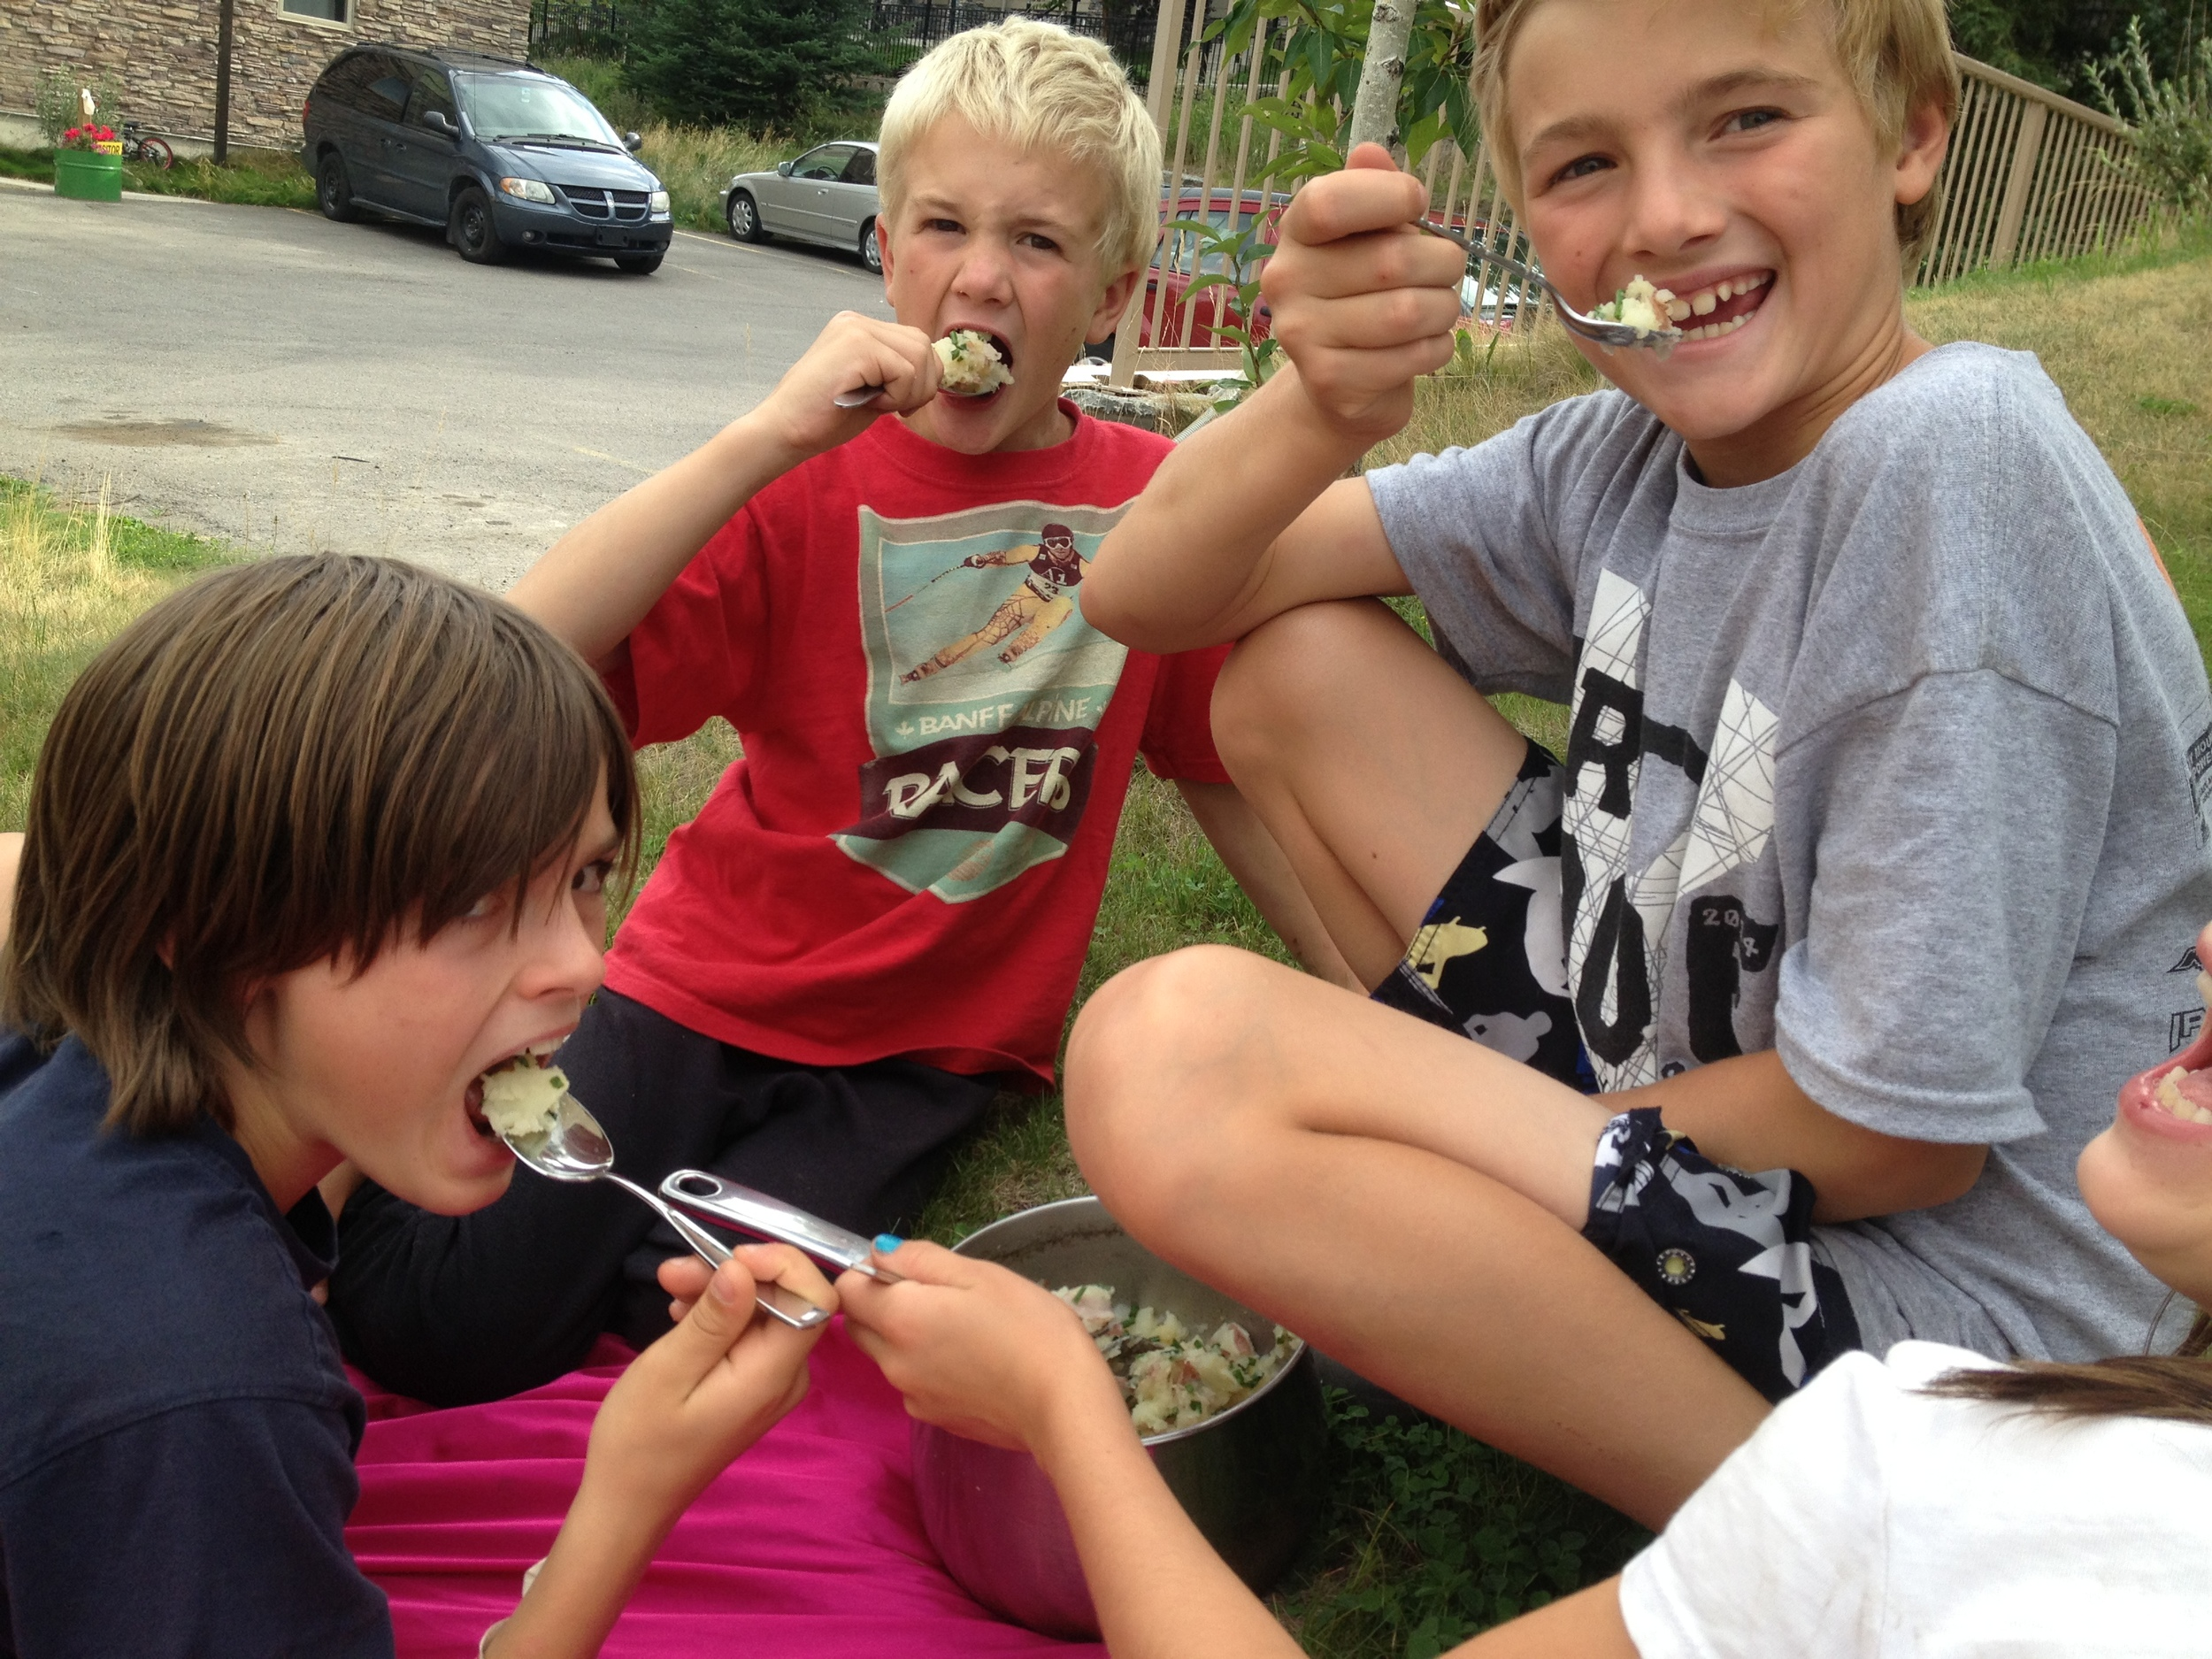 My son and his friends - pretty proud after harvesting the potatoes from our garden and making mashed potatoes. Super proud and super yum!